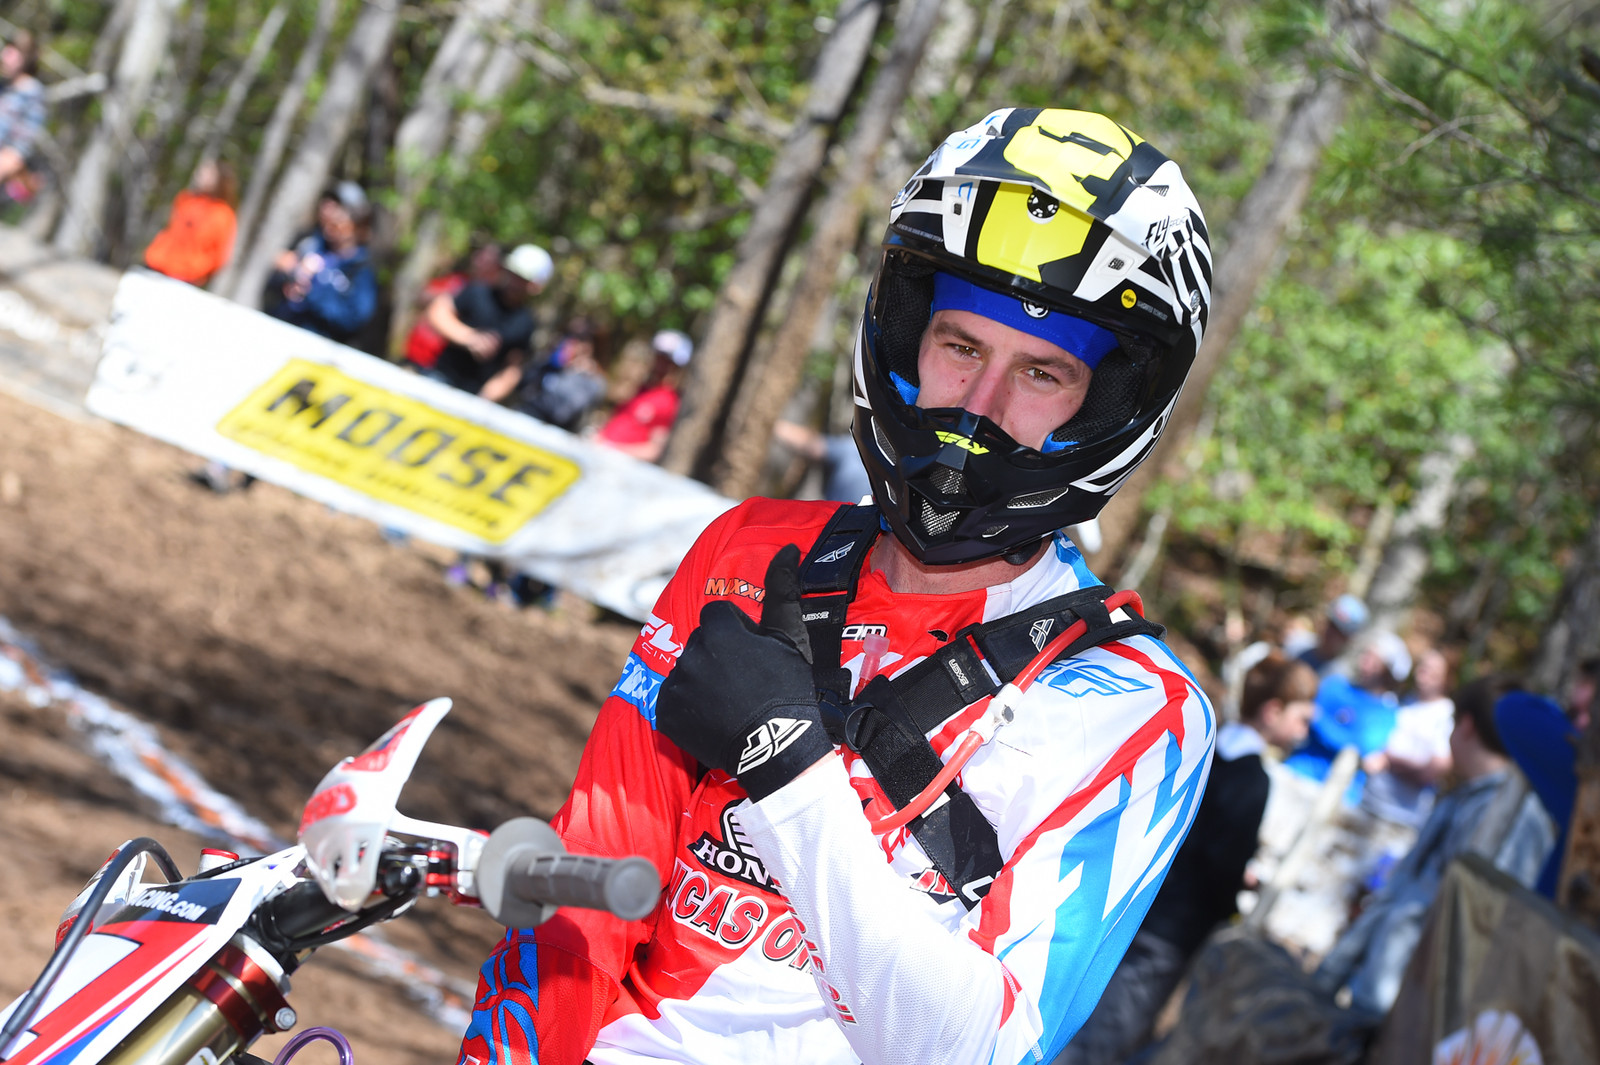 Chris Bach - Steele Creek GNCC - Motocross Pictures - Vital MX